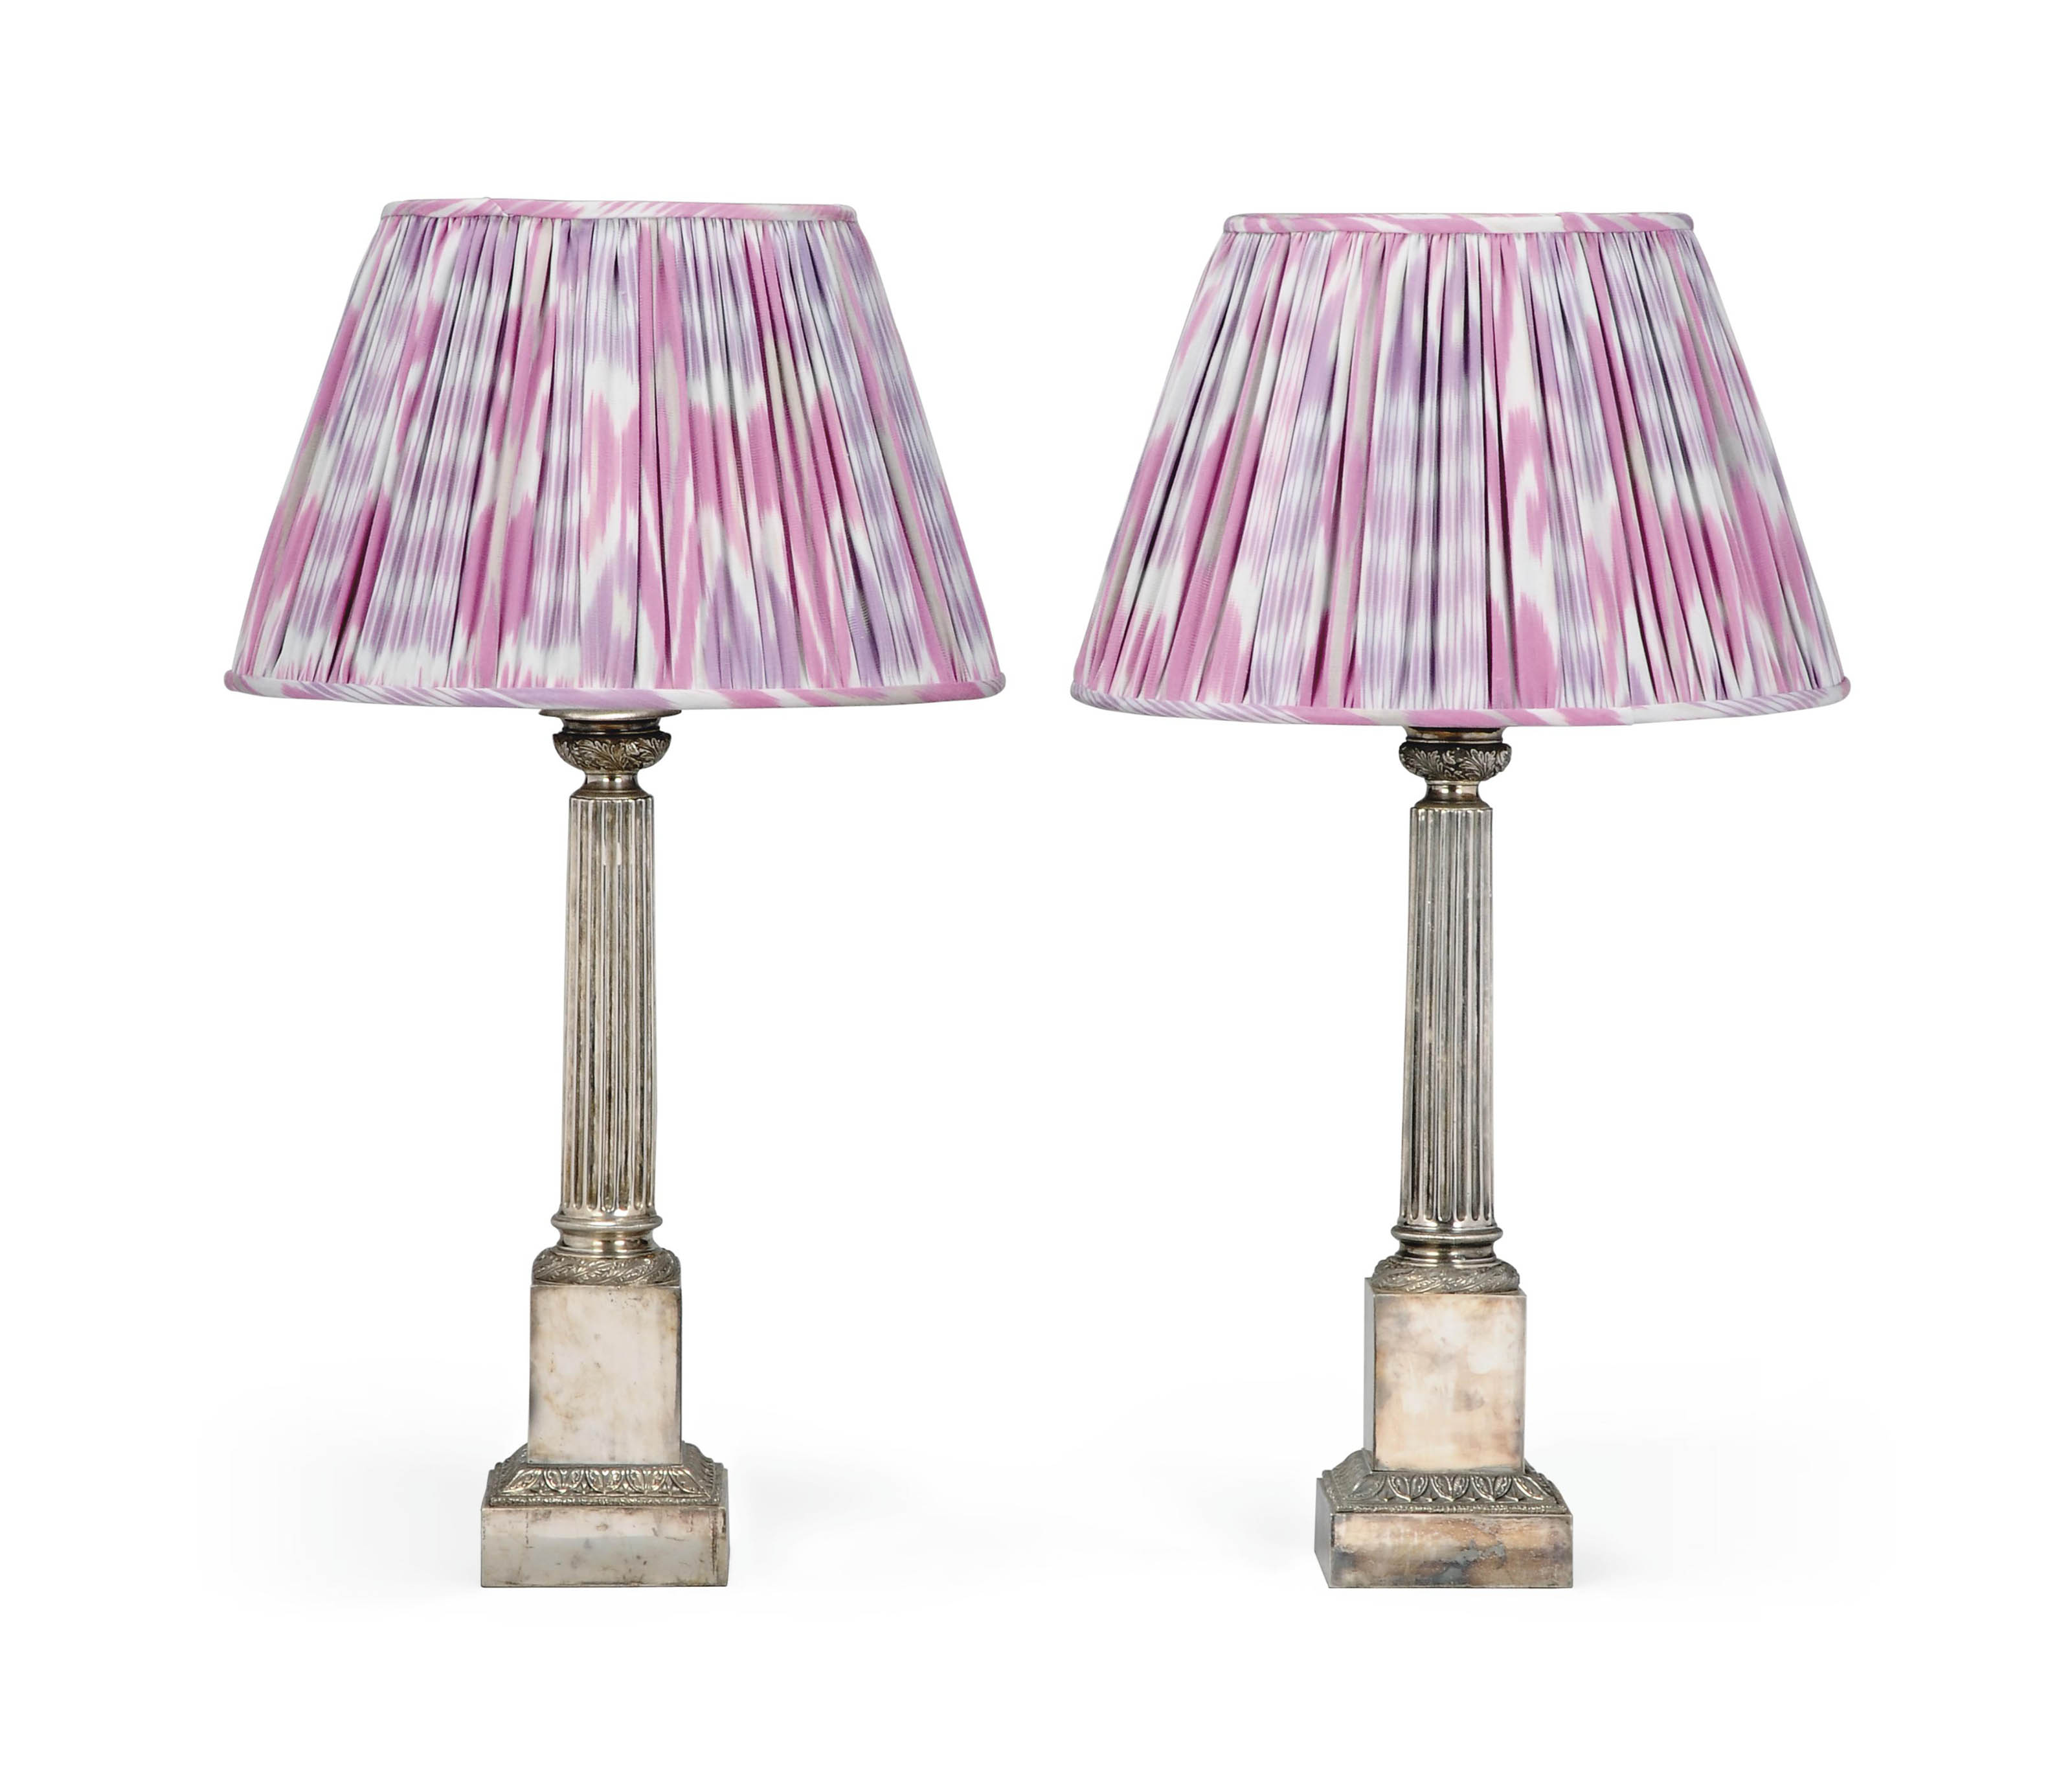 A PAIR OF MODERN SILVERED 'MARLBOROUGH' TABLE LAMPS